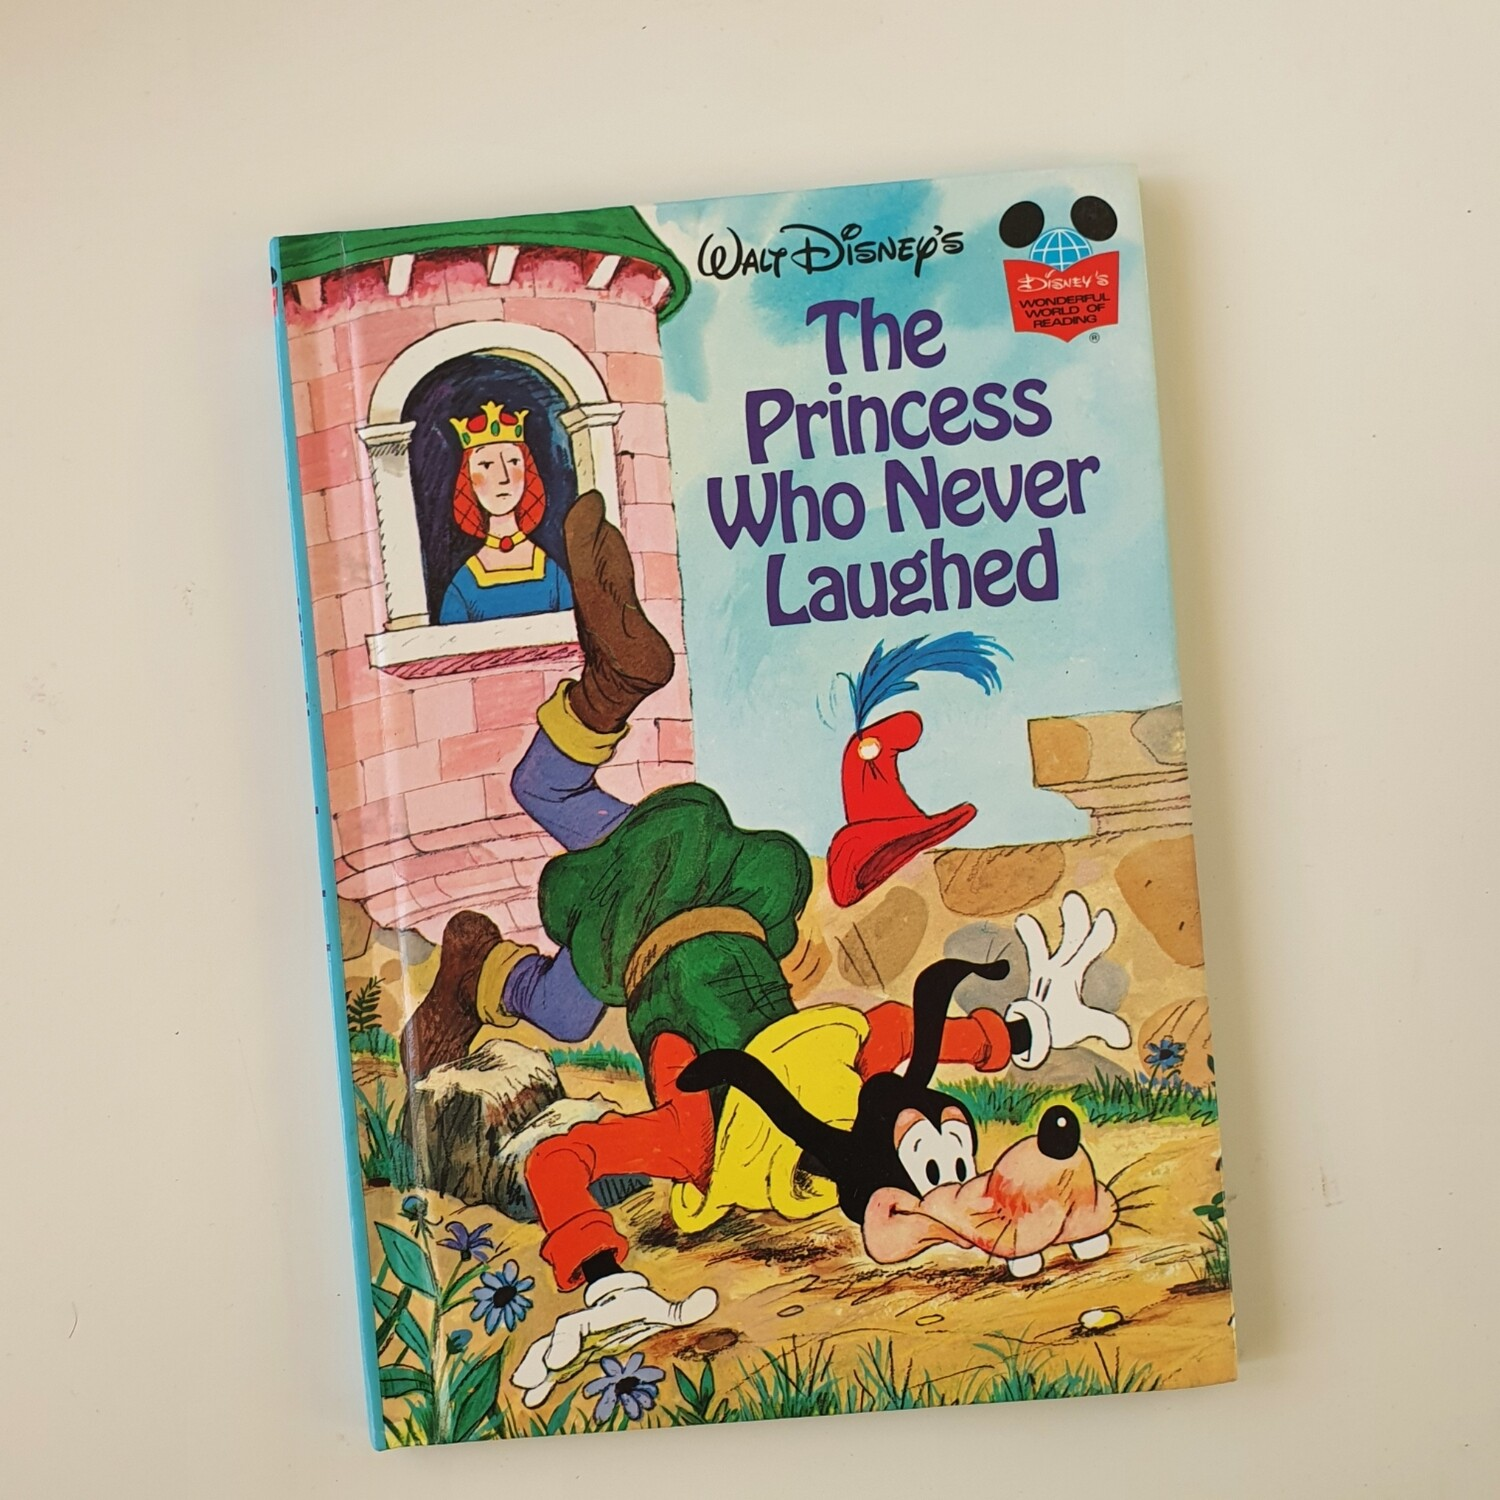 Goofy - The Princess who never laughed